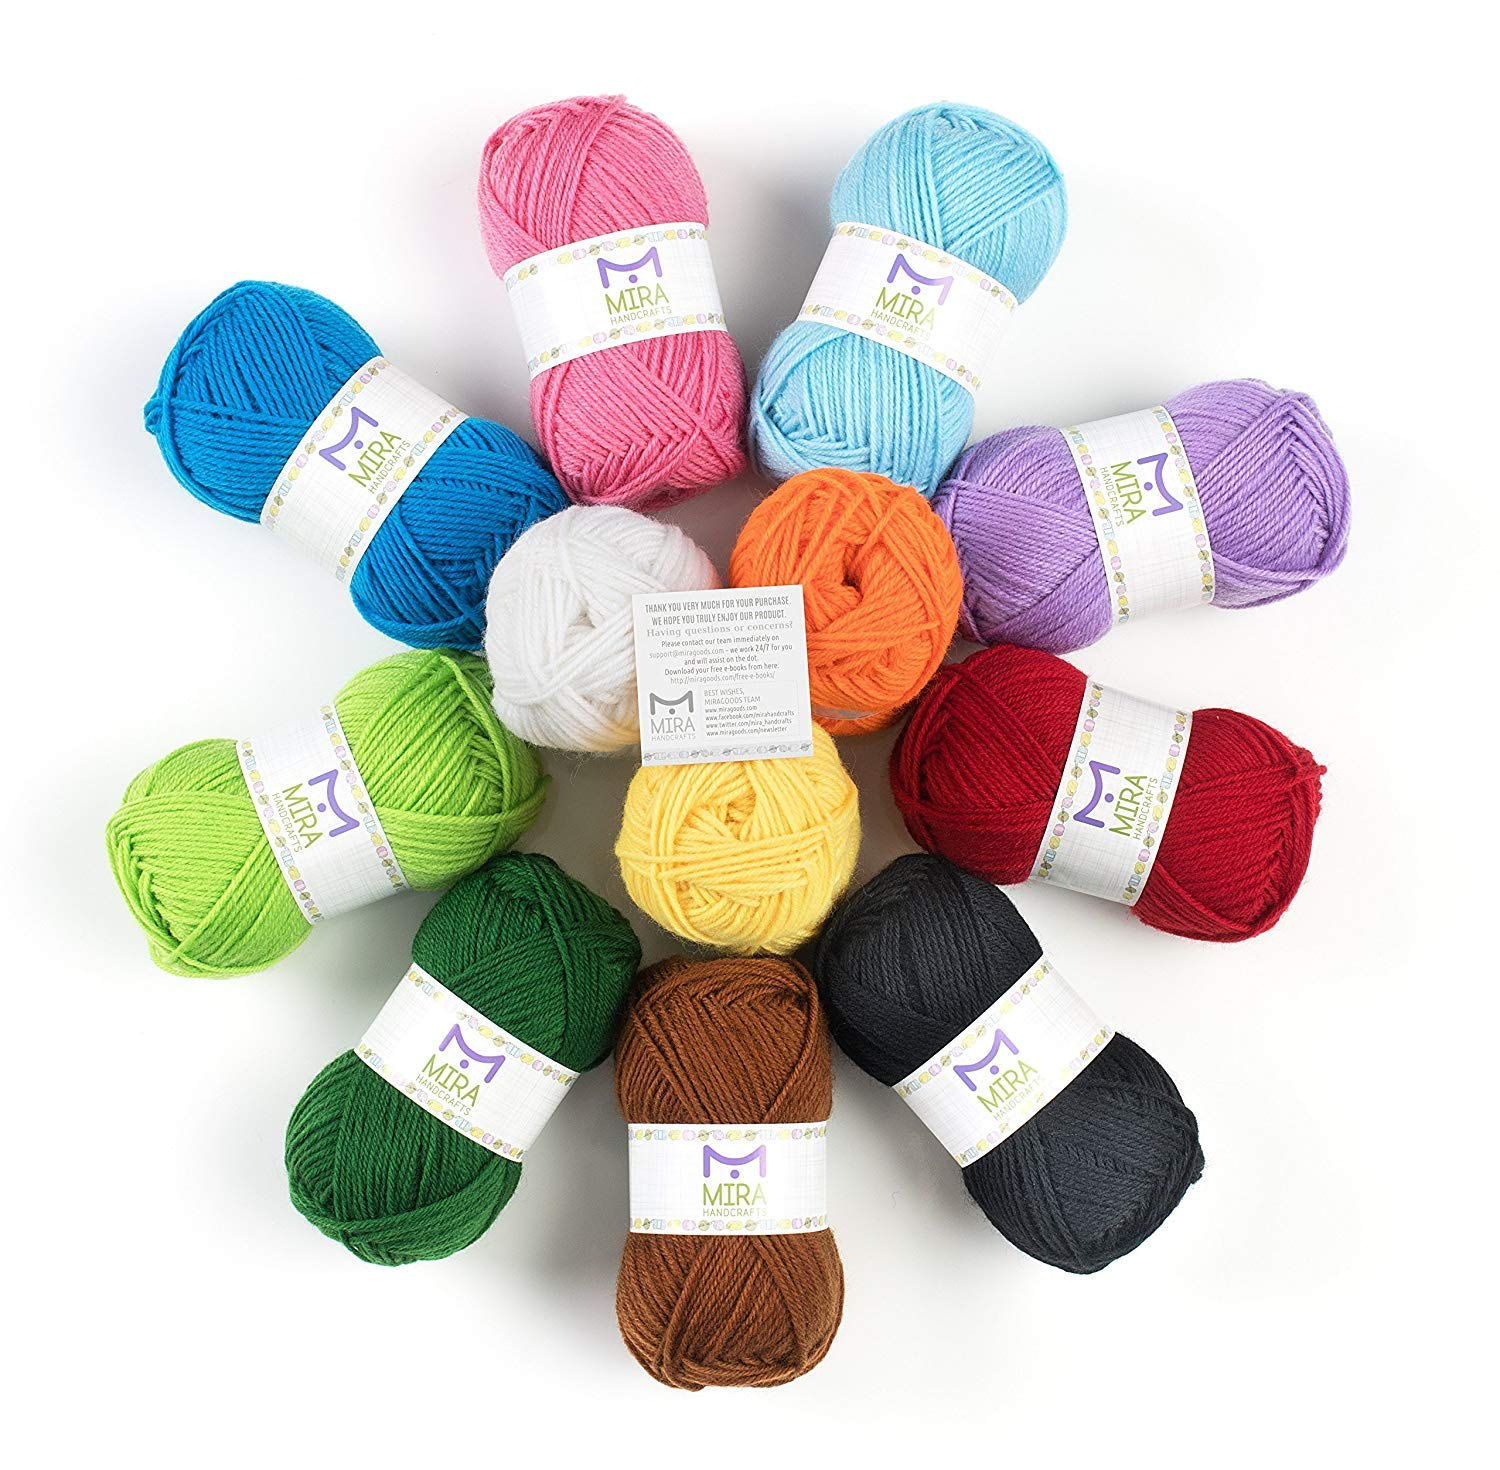 Mira Handcrafts Acrylic 1.76 Ounce(50g) Each Large Yarn Skeins - 12 Multicolor Knitting and Crochet Yarn Bulk - Starter Kit for Colorful Craft - 7 Ebooks with Yarn Patterns by Mira HandCrafts (Image #5)